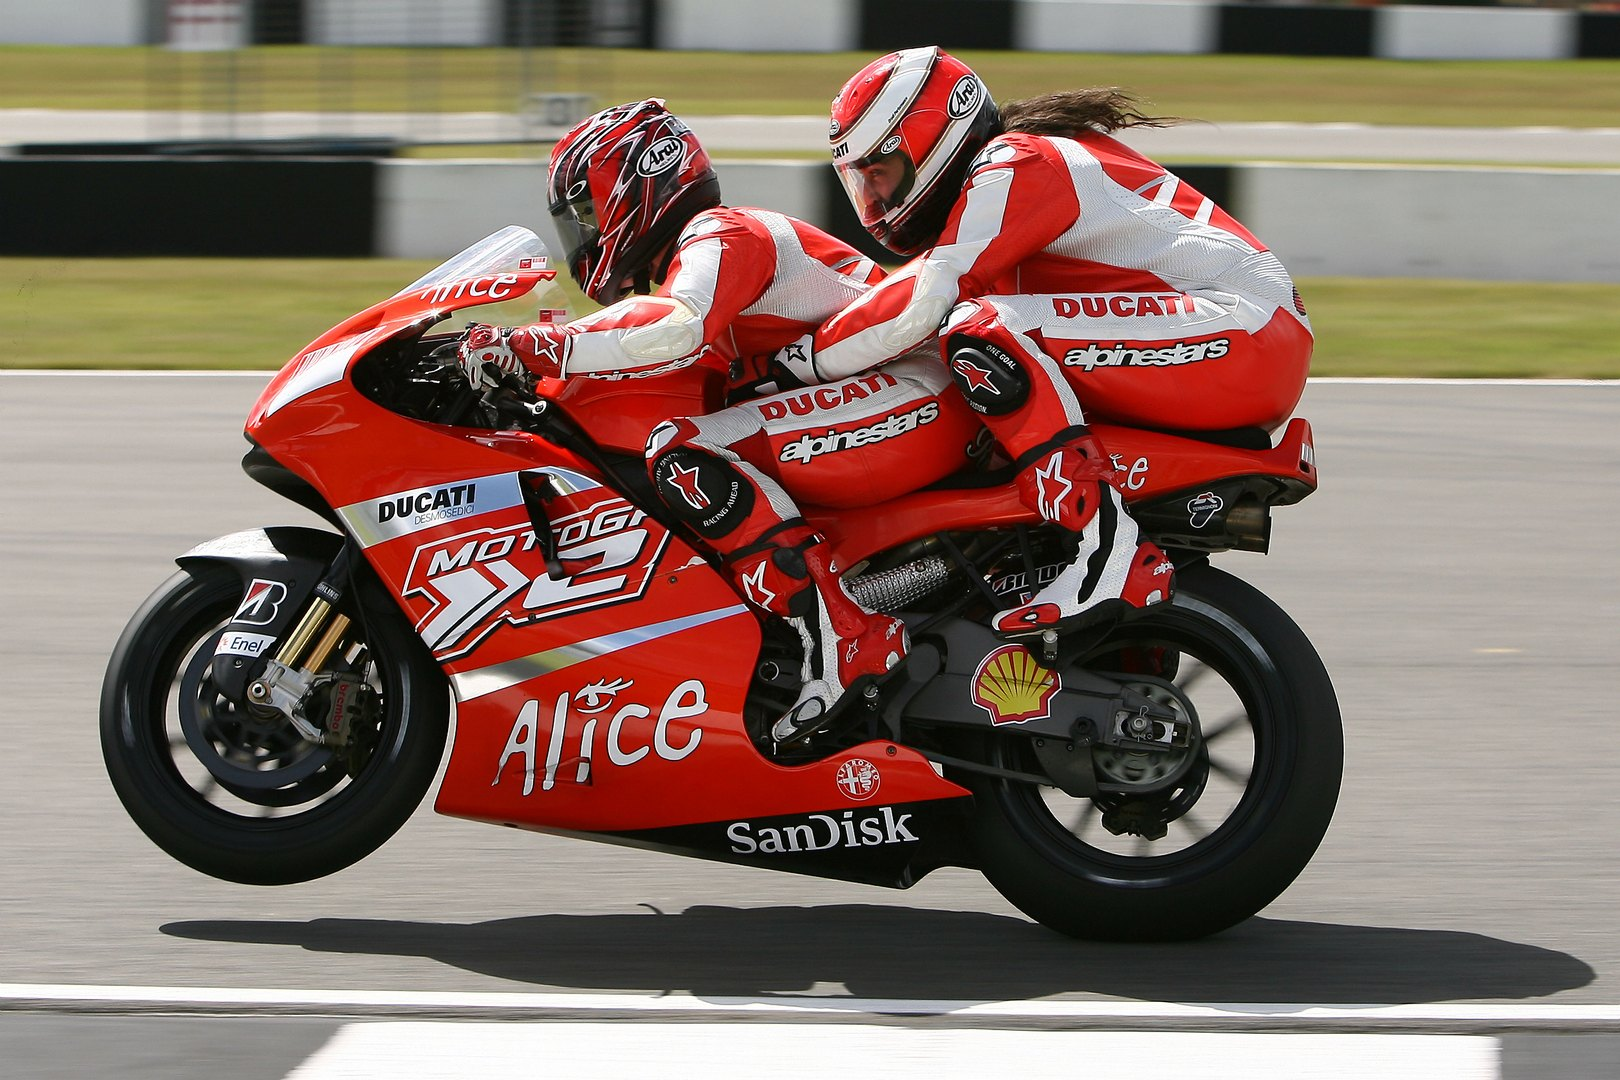 Riders For Health Offering Two Seater Ducati Ride At